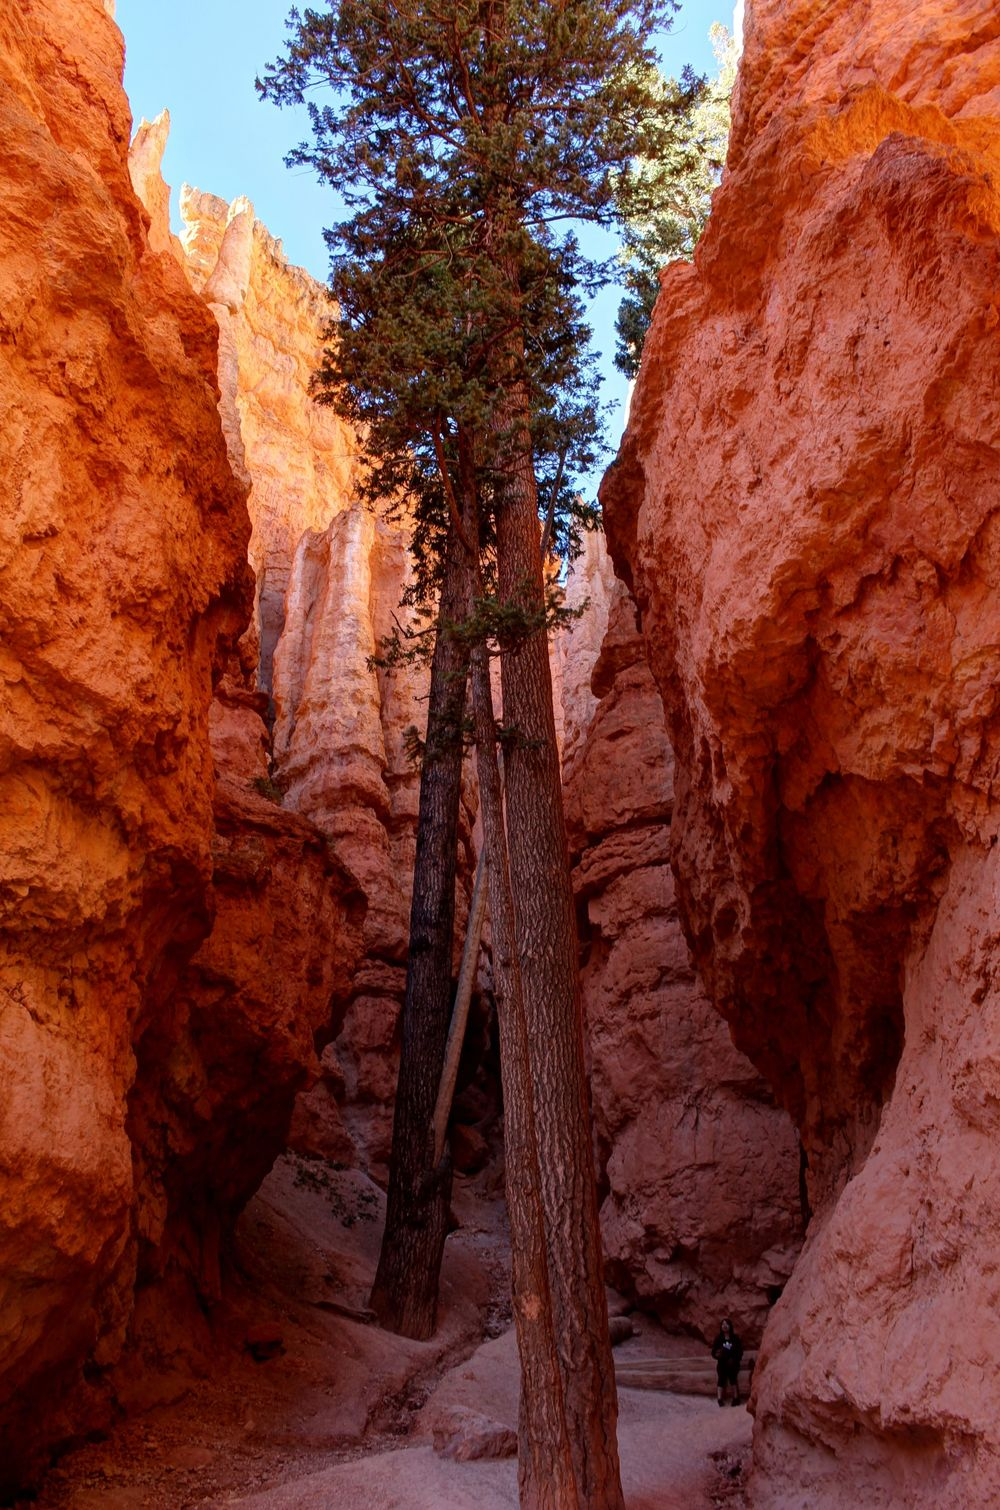 Queens Garden Trail, Bryce Canyon National Park, Utah, USA